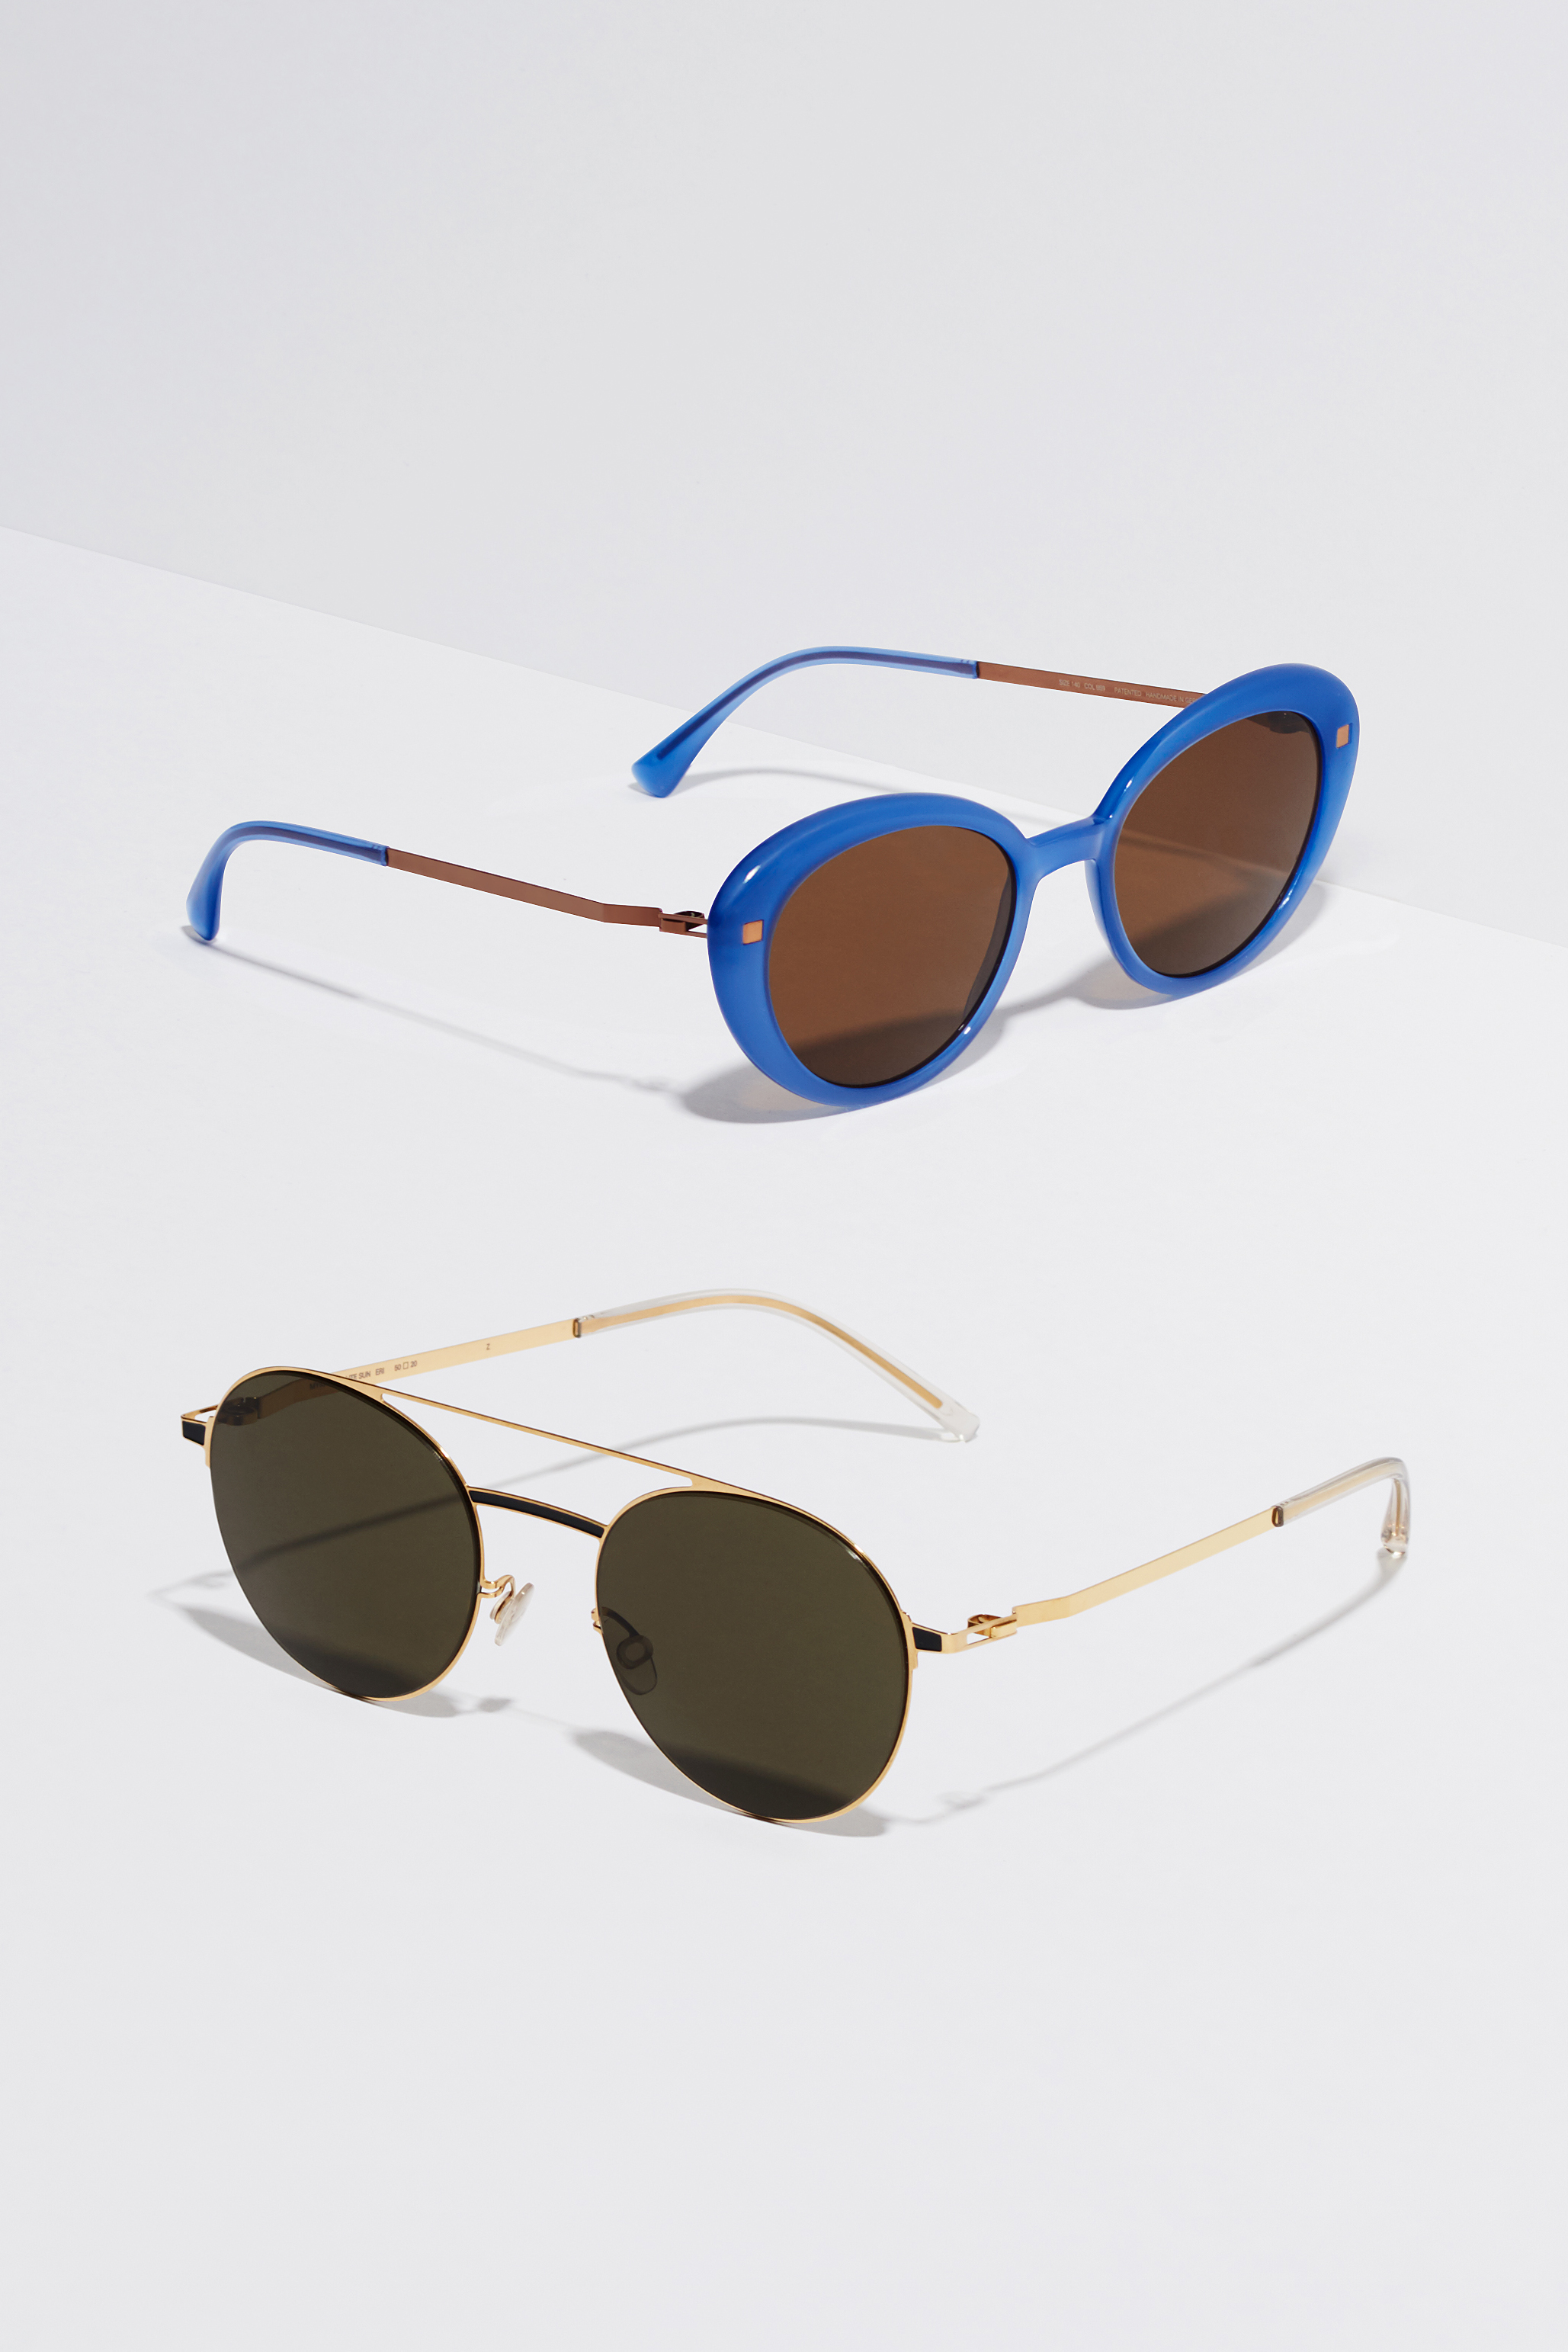 18d9aa62e MYKITA Lite Acetate Sun Luava C88 Misty Blue Shiny Copper Brown Solid  MYKITA Lite Acetate Sun